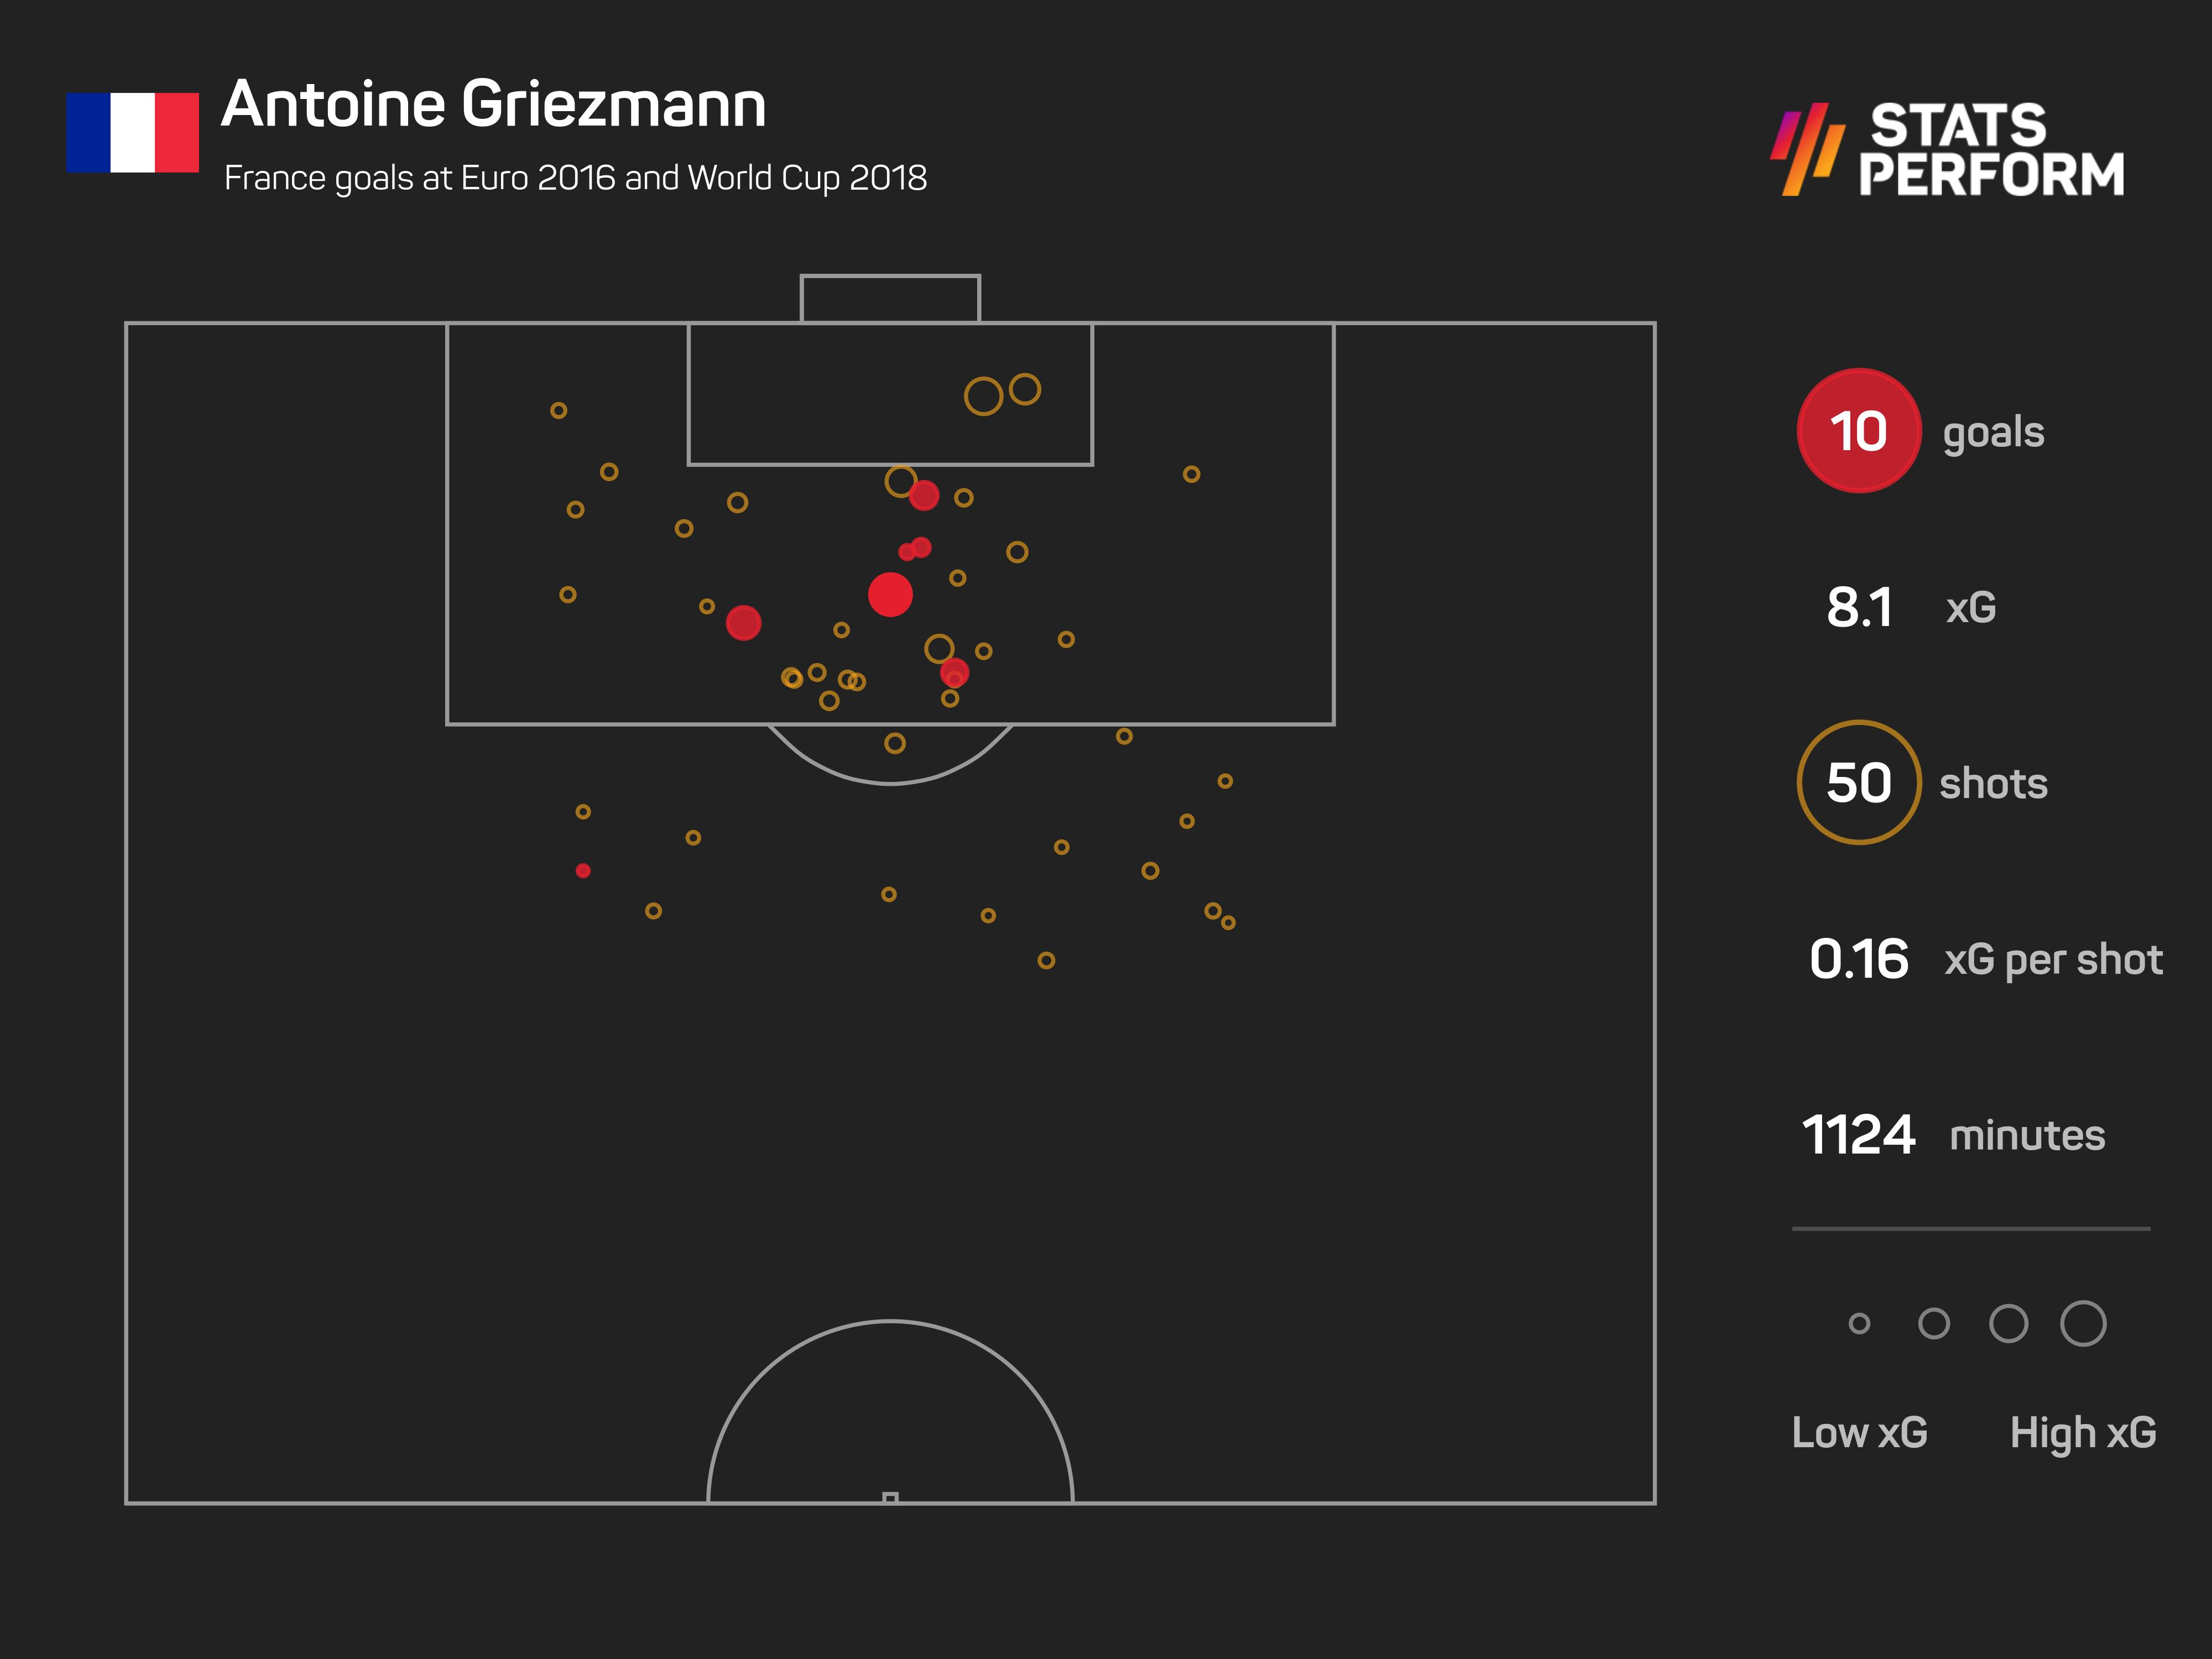 Antoine Griezmann xG, Euro 2016 and World Cup 2018